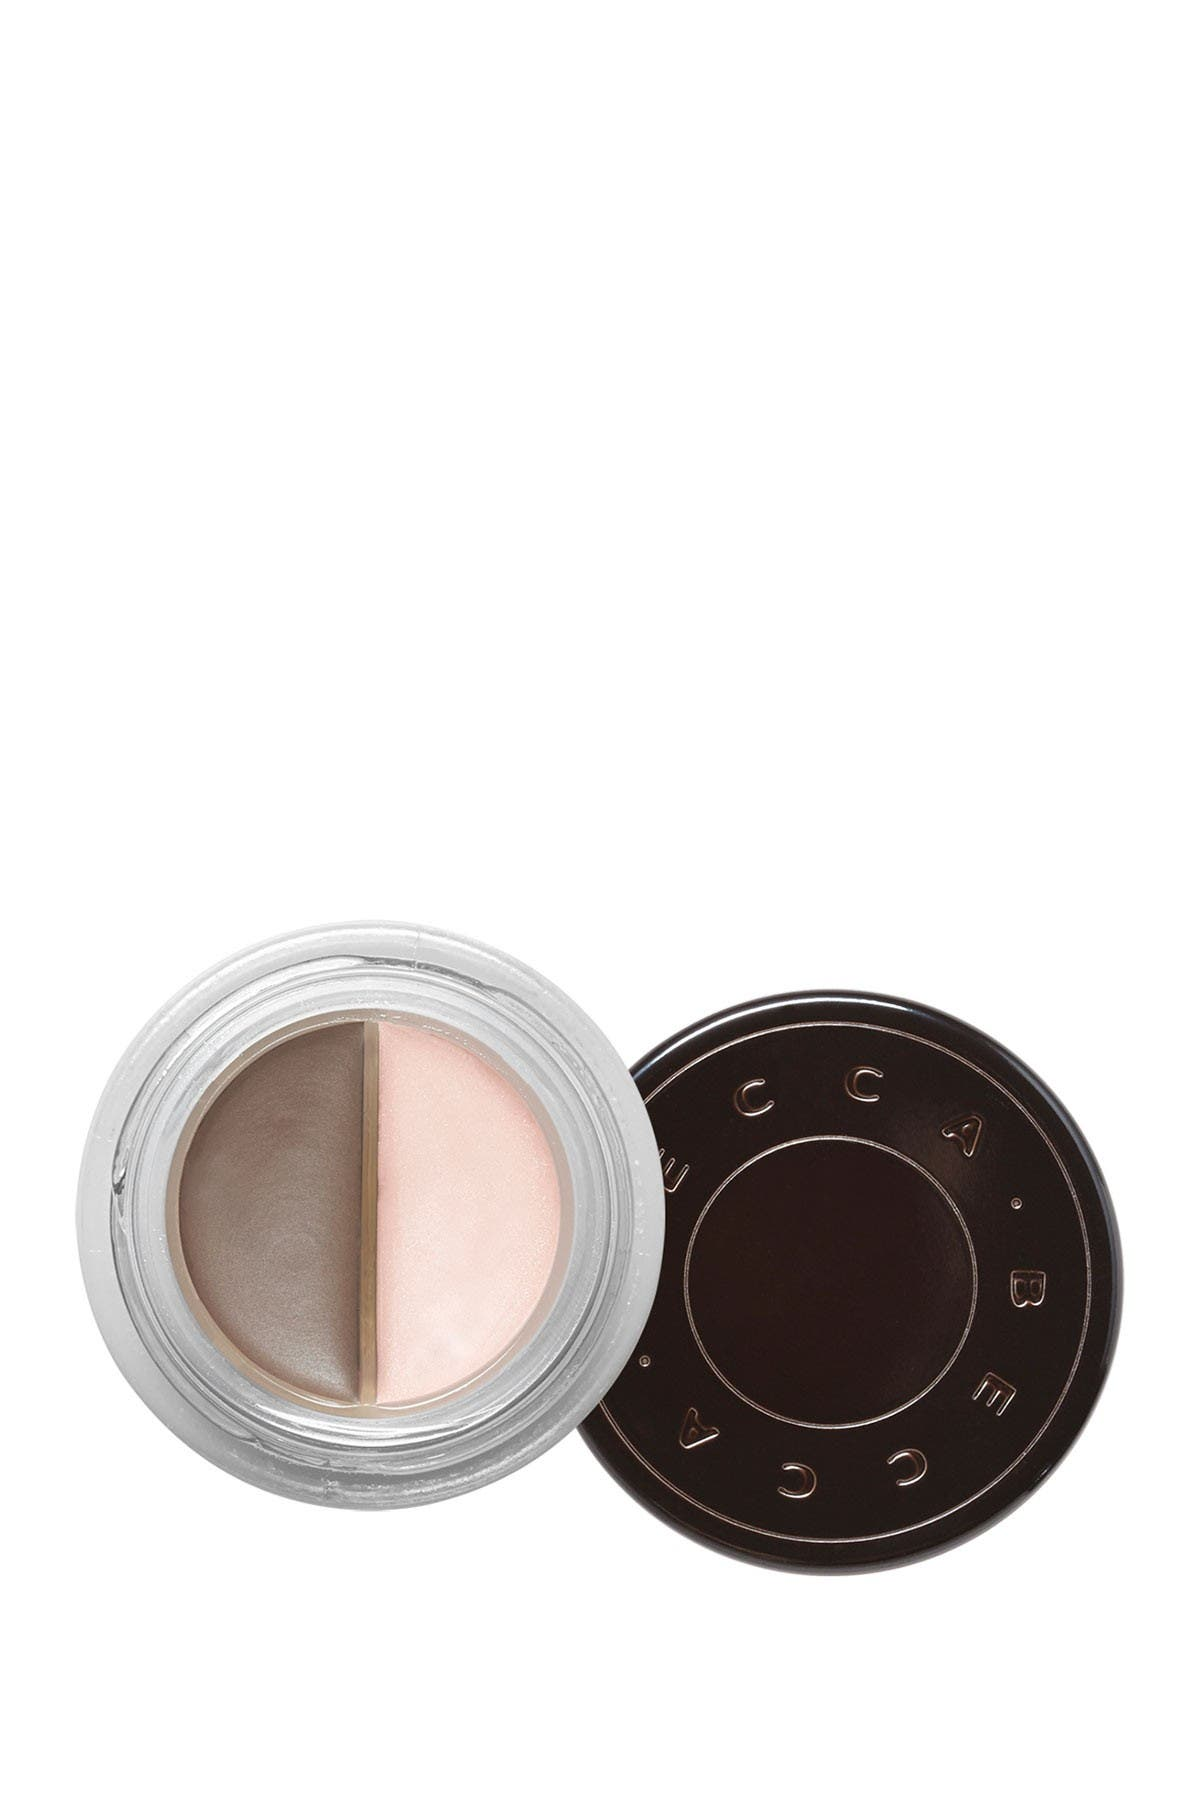 Image of BECCA Cosmetics Shadow & Light Brow Contour Mousse - Cocoa